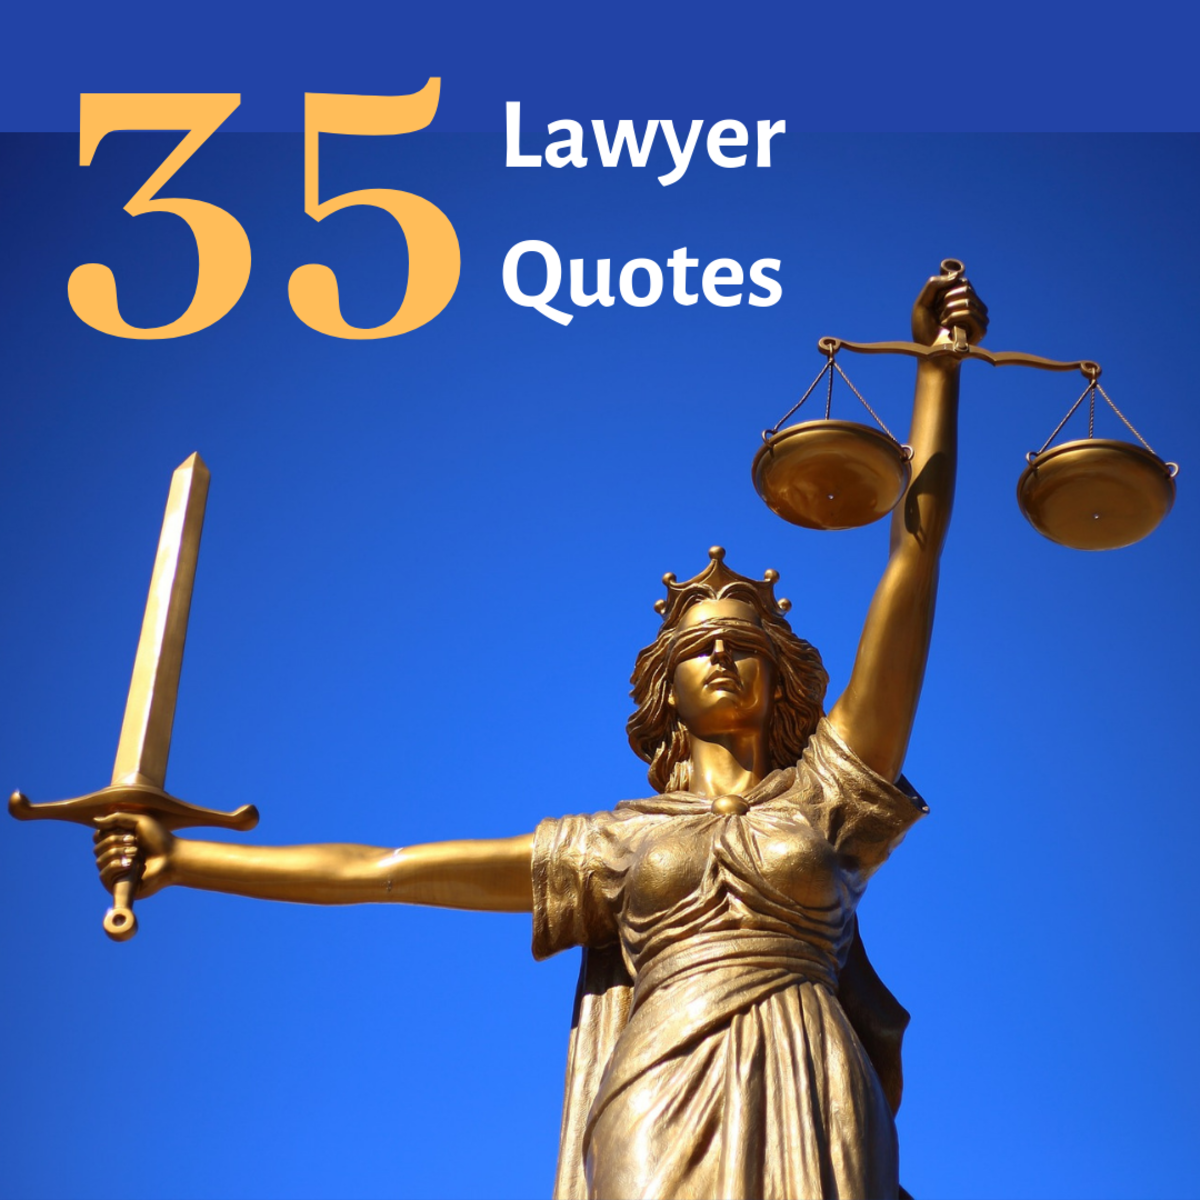 Read some quotes related to law and lawyers, along with messages of gratitude for an attorney.